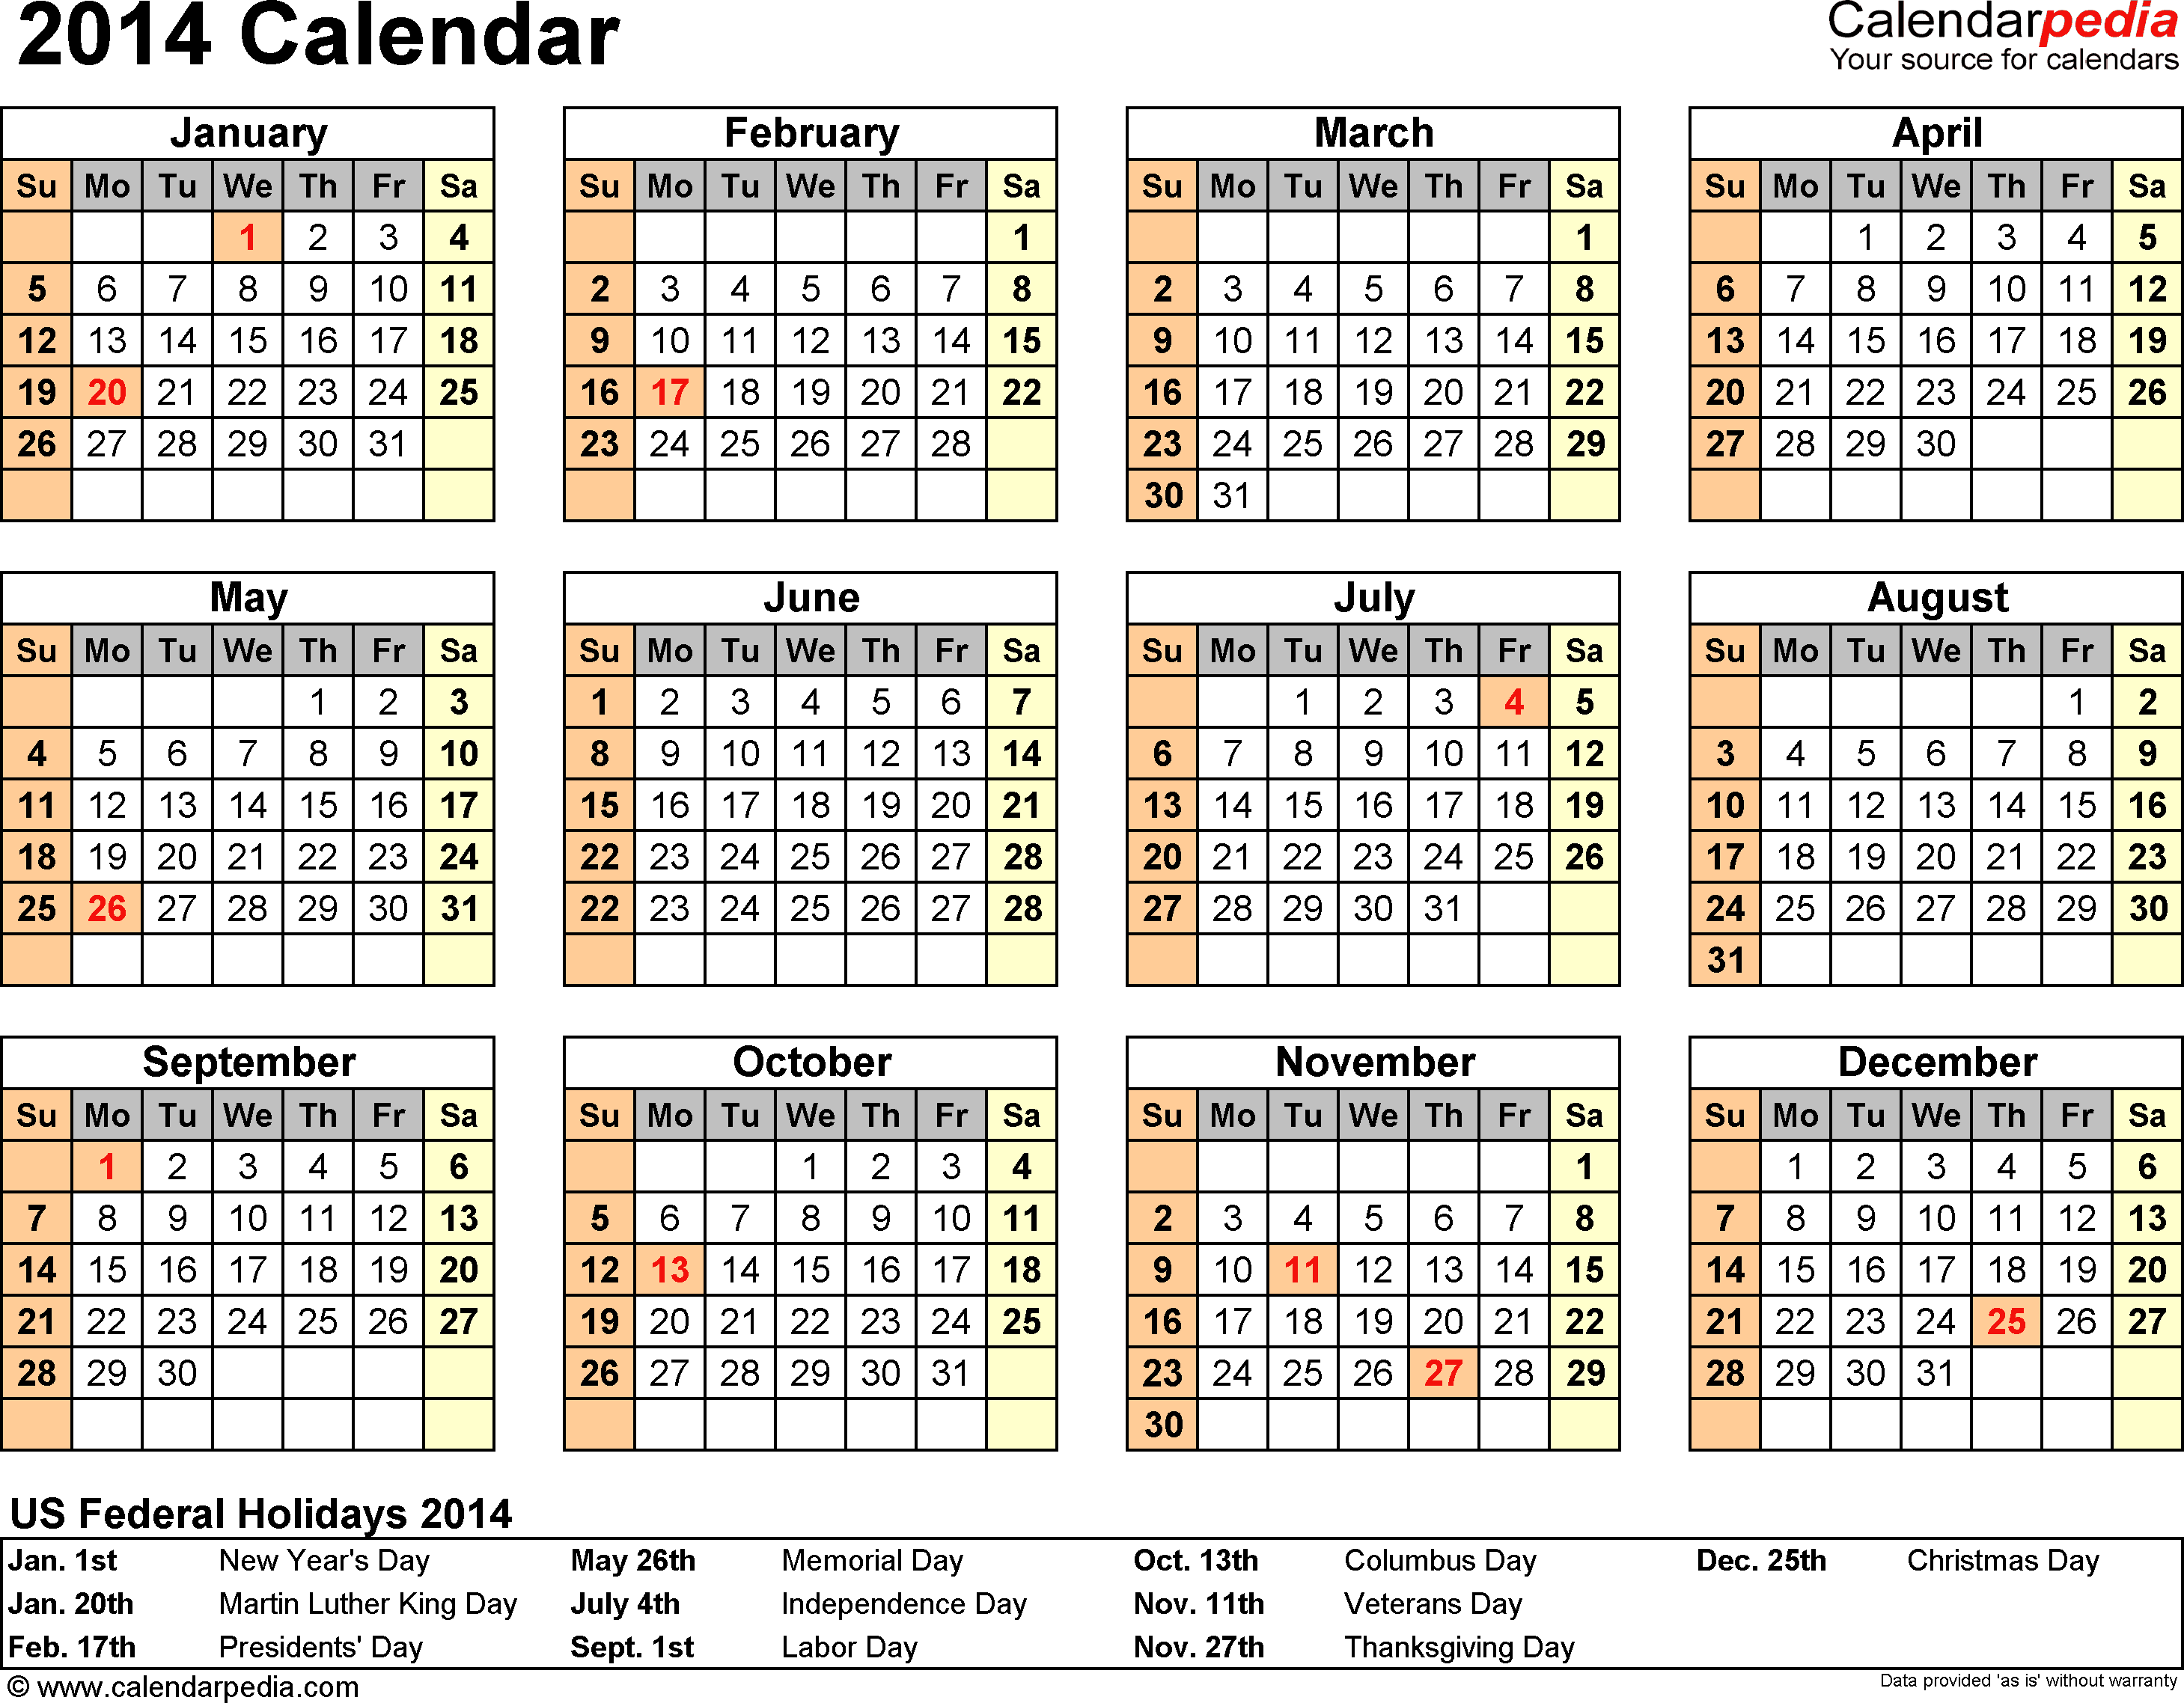 template 8 2014 calendar for word year at a glance 1 page